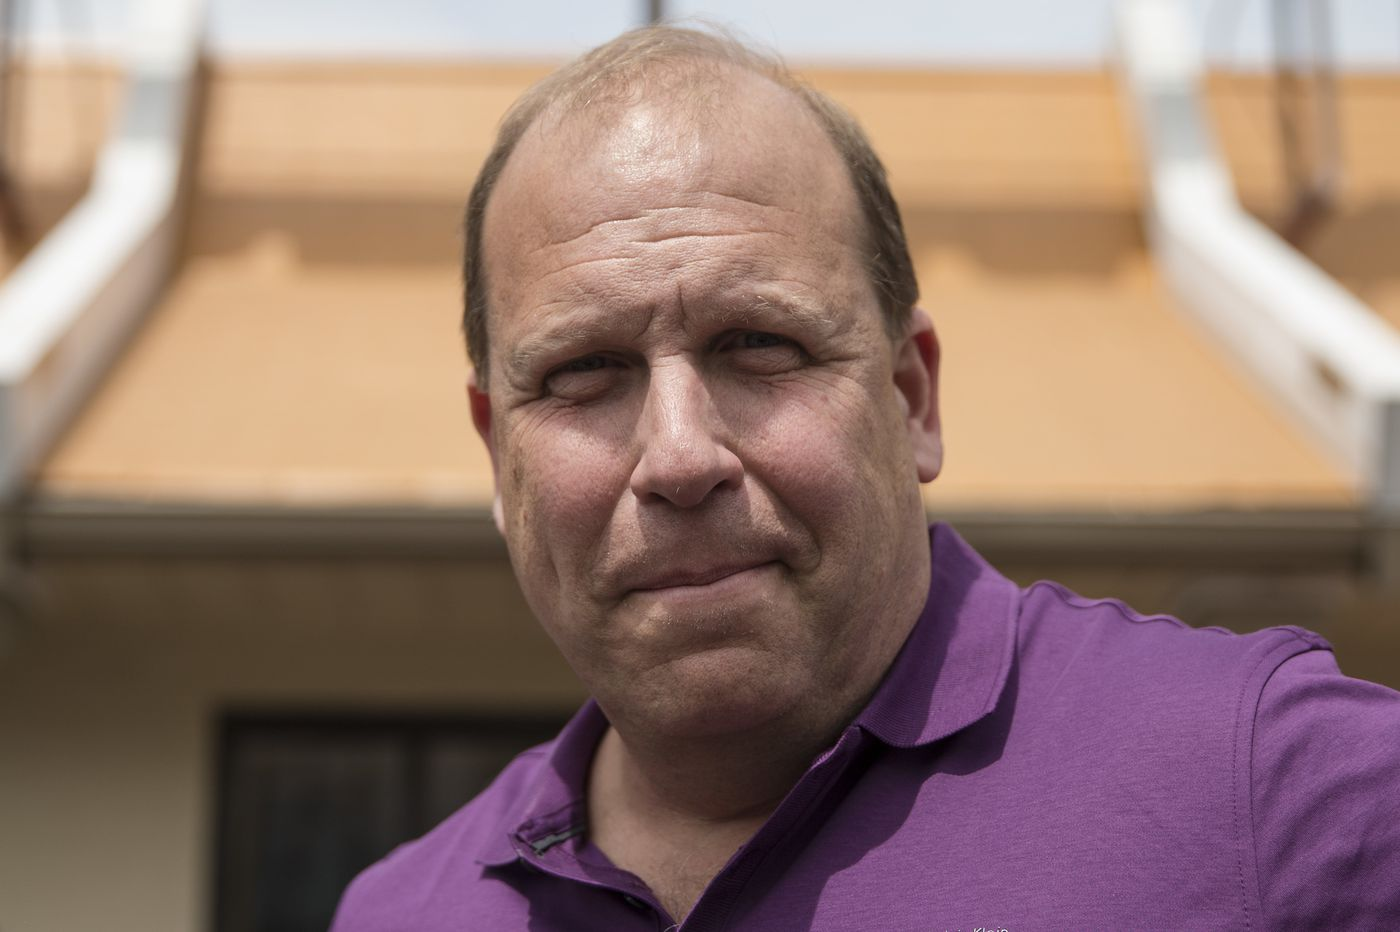 Two more Democratic Party leaders call on Sen. Daylin Leach to resign, citing 'troubling behavior'